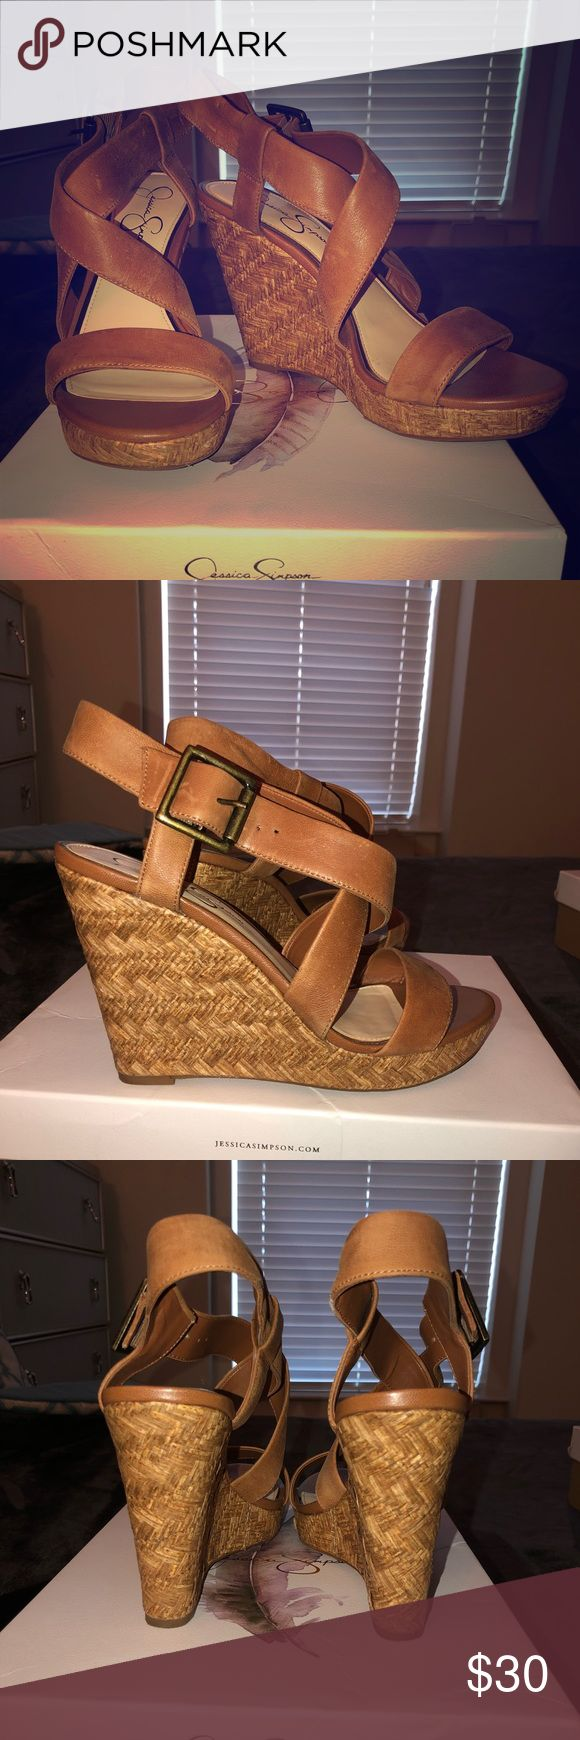 Jessica Simpson Wedge Sandals In Burnt Umber Jessica Simpson Wedge Sandals in Burnt Umber. Size 9.5. Lightly worn. One small scuff. Comes with box. Jessica Simpson Shoes Wedges